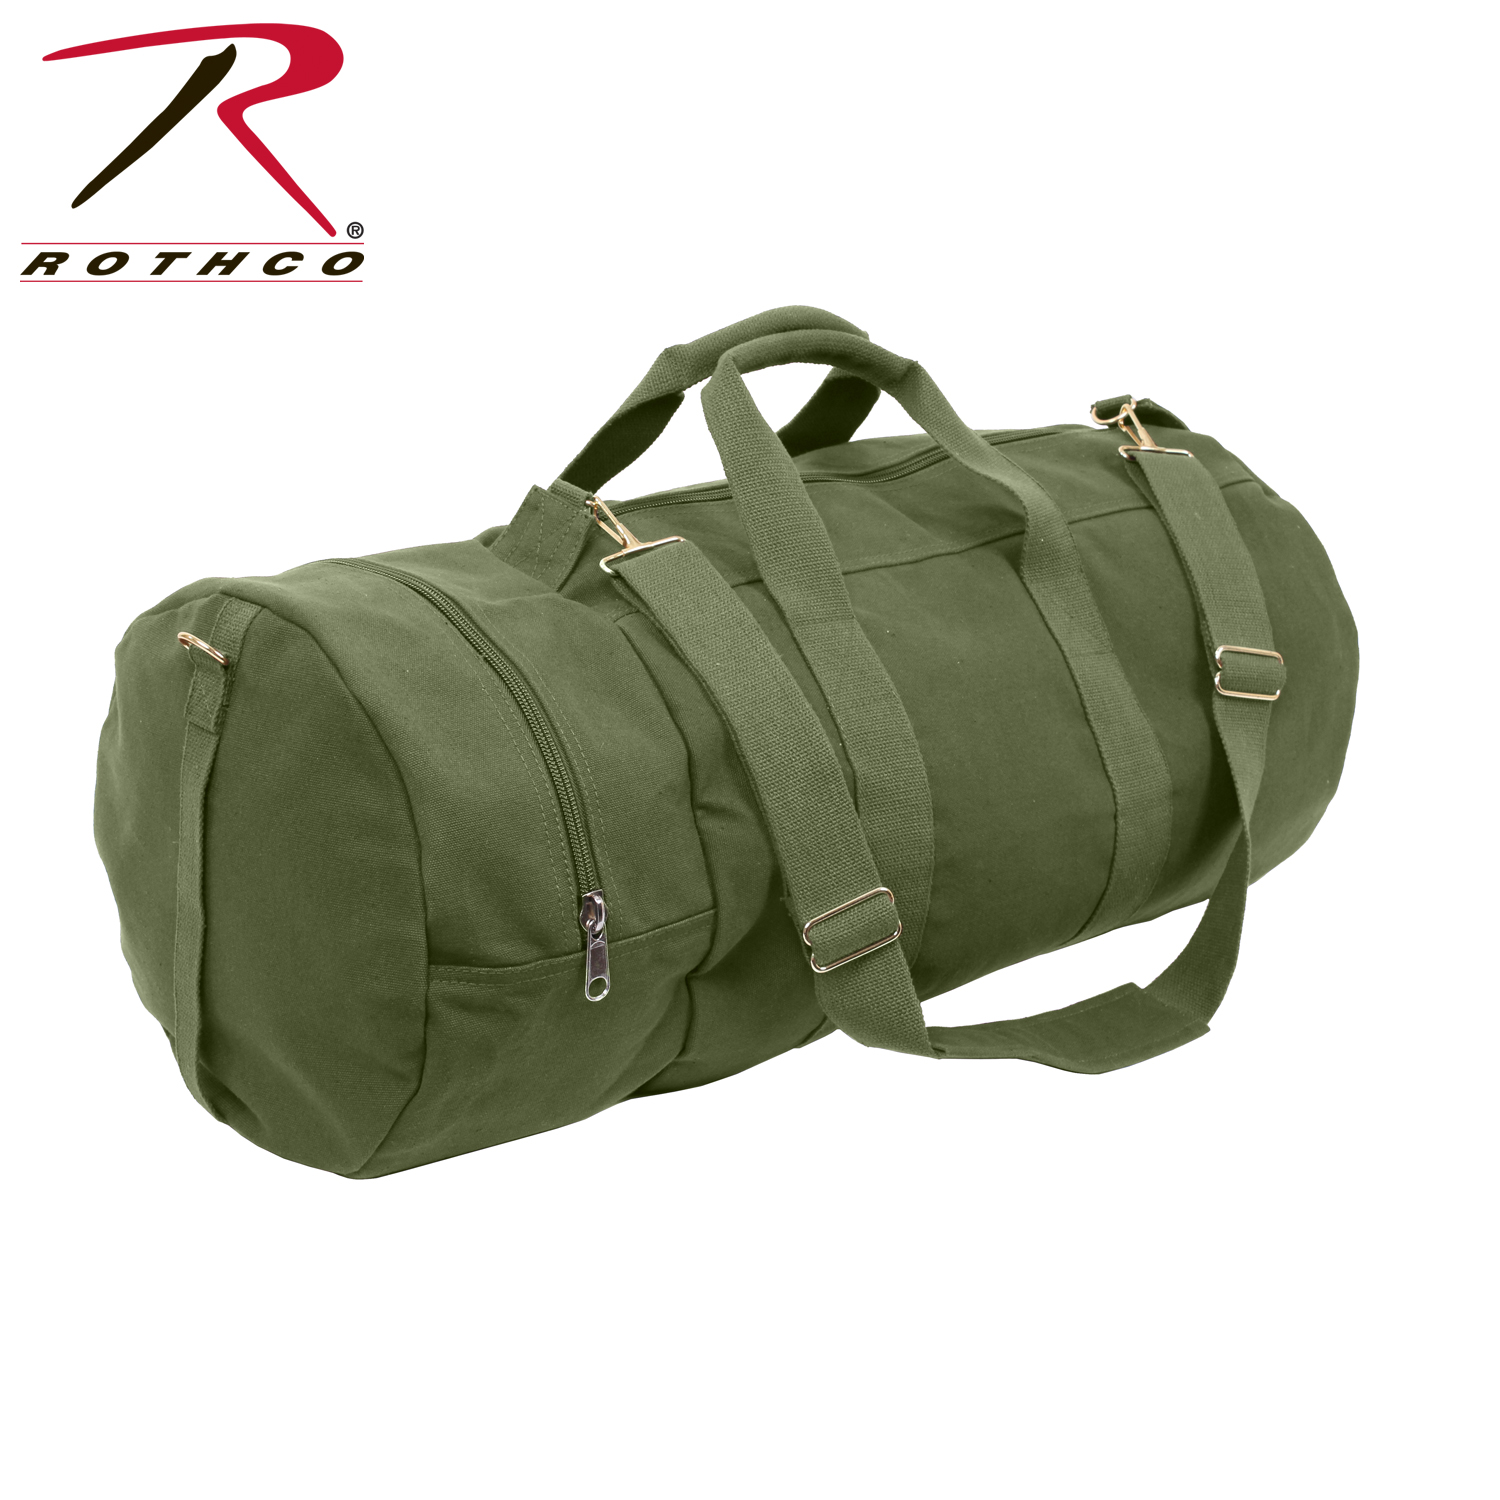 92b724129 Details about Rothco 2372 / 2373 / 2377 Canvas Double-Ender Sports Bag